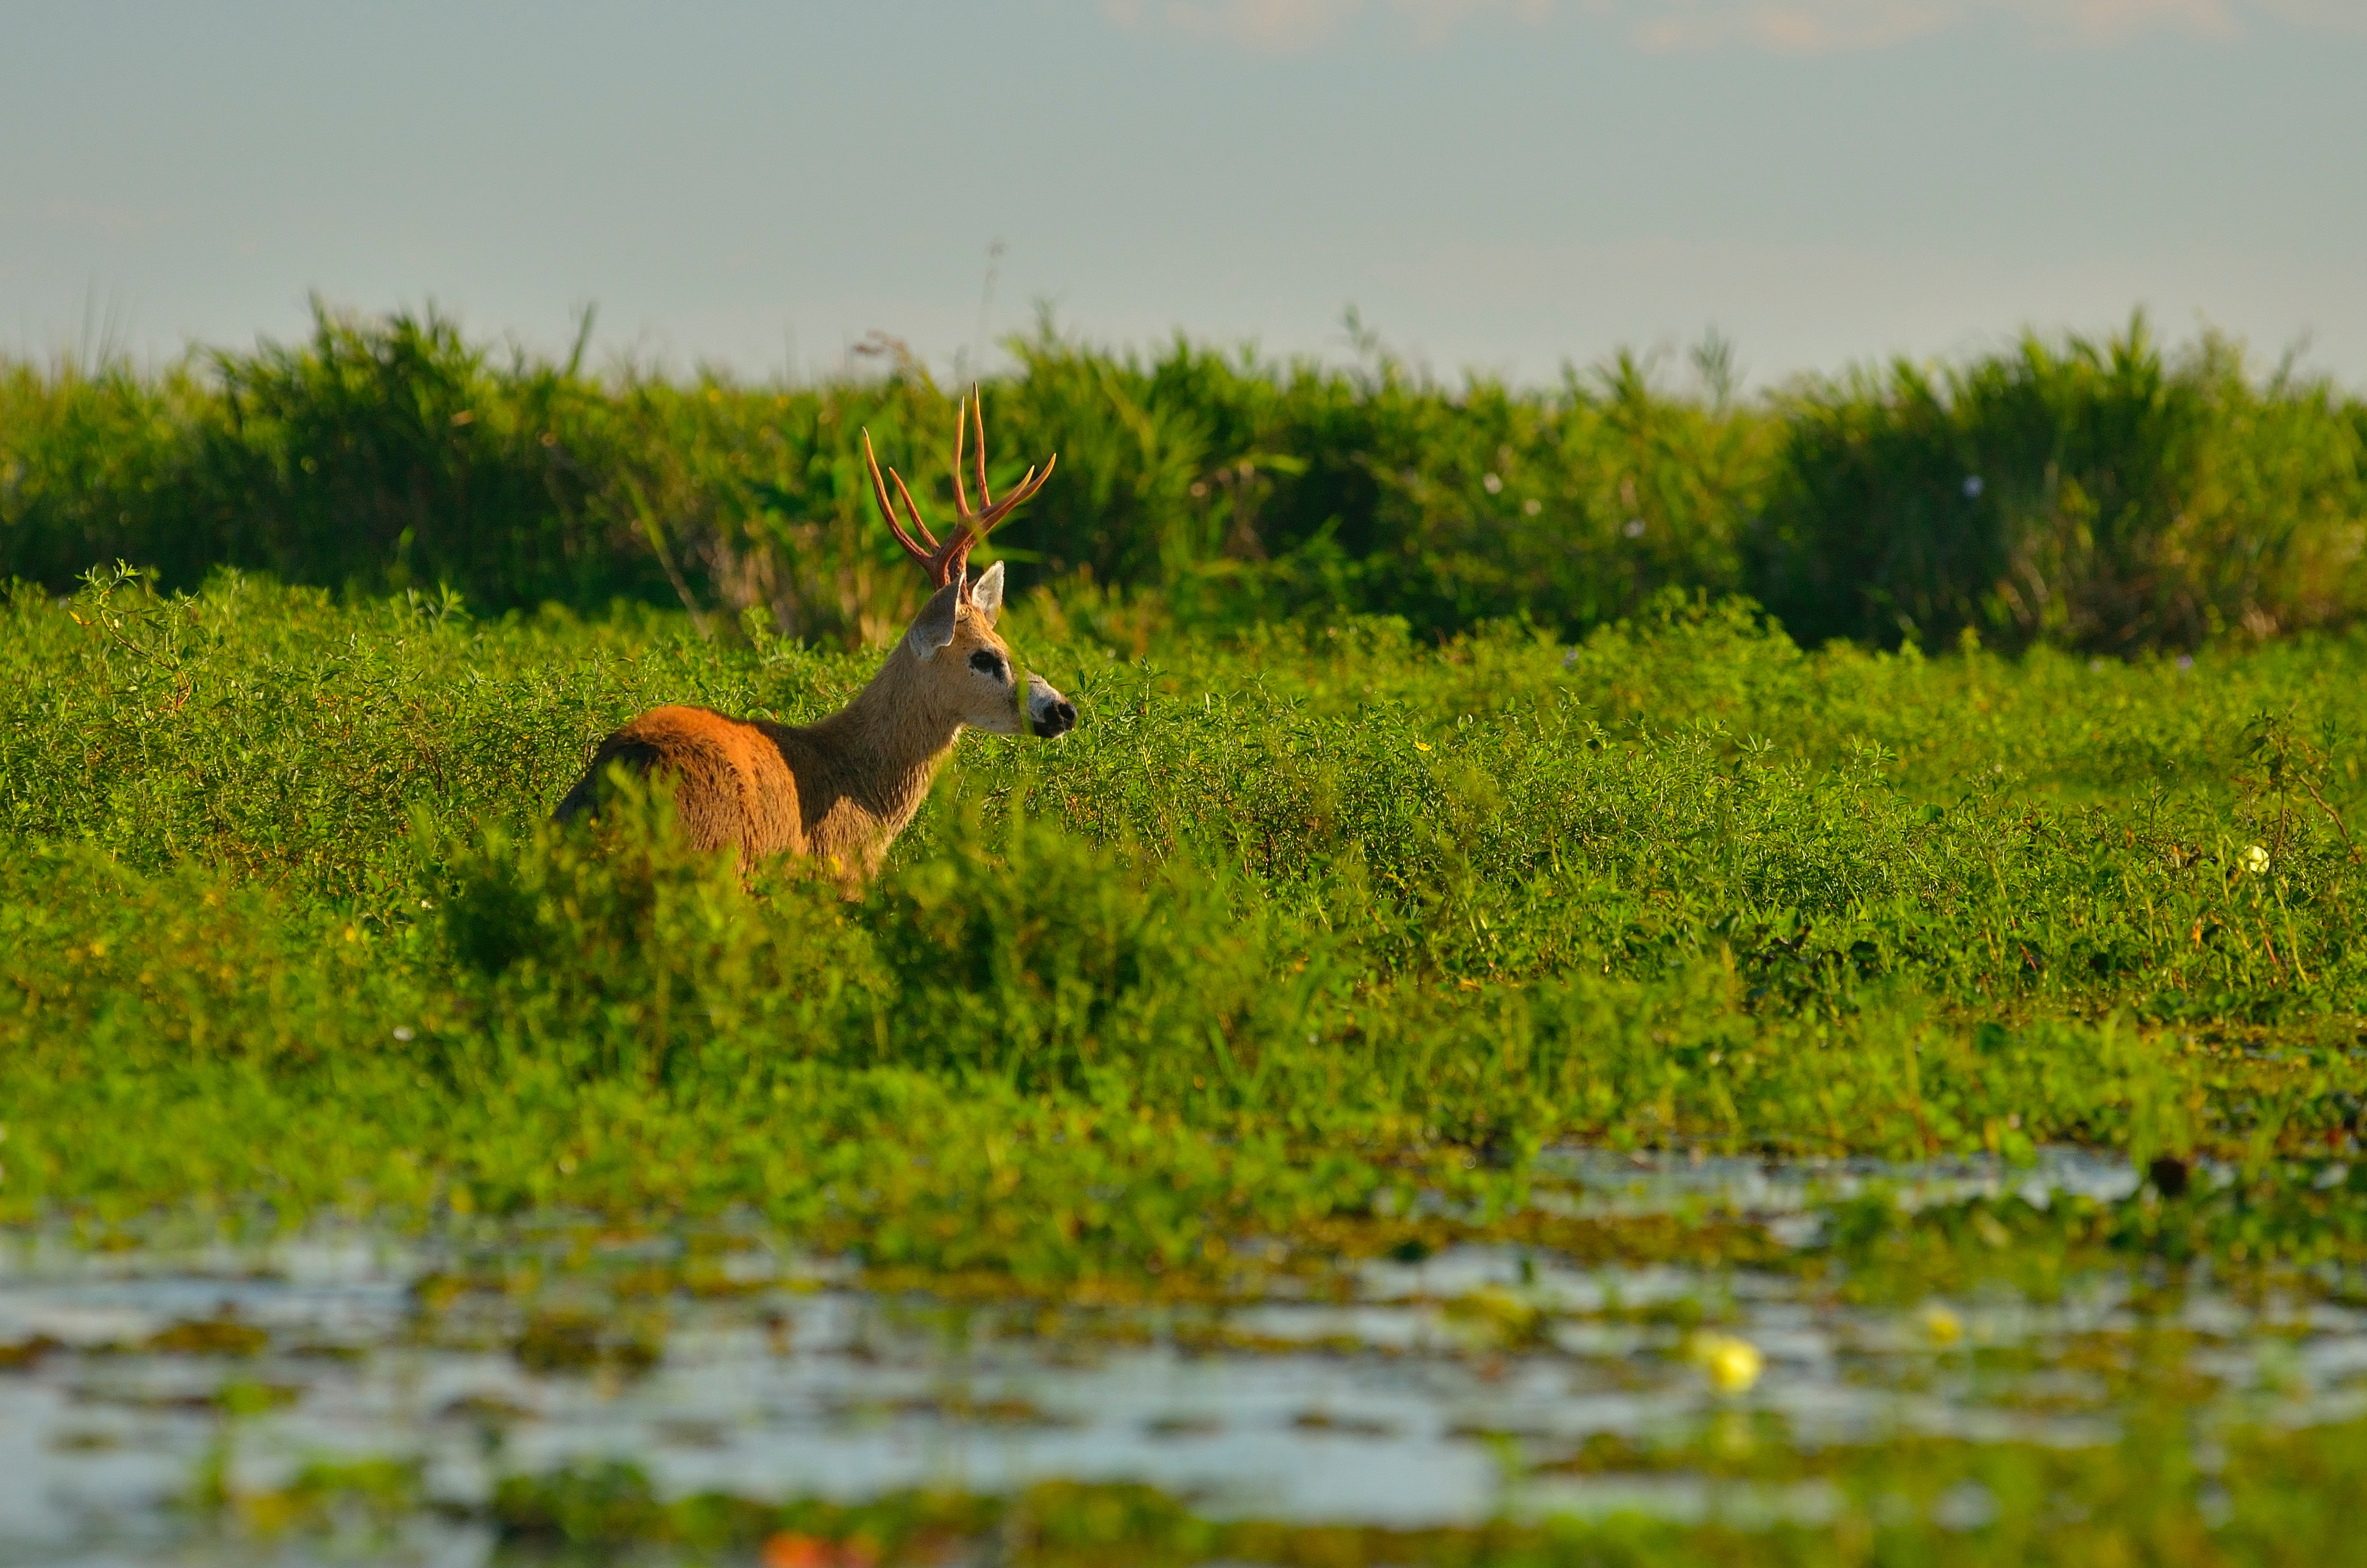 Brown moose on green leafed grass photo